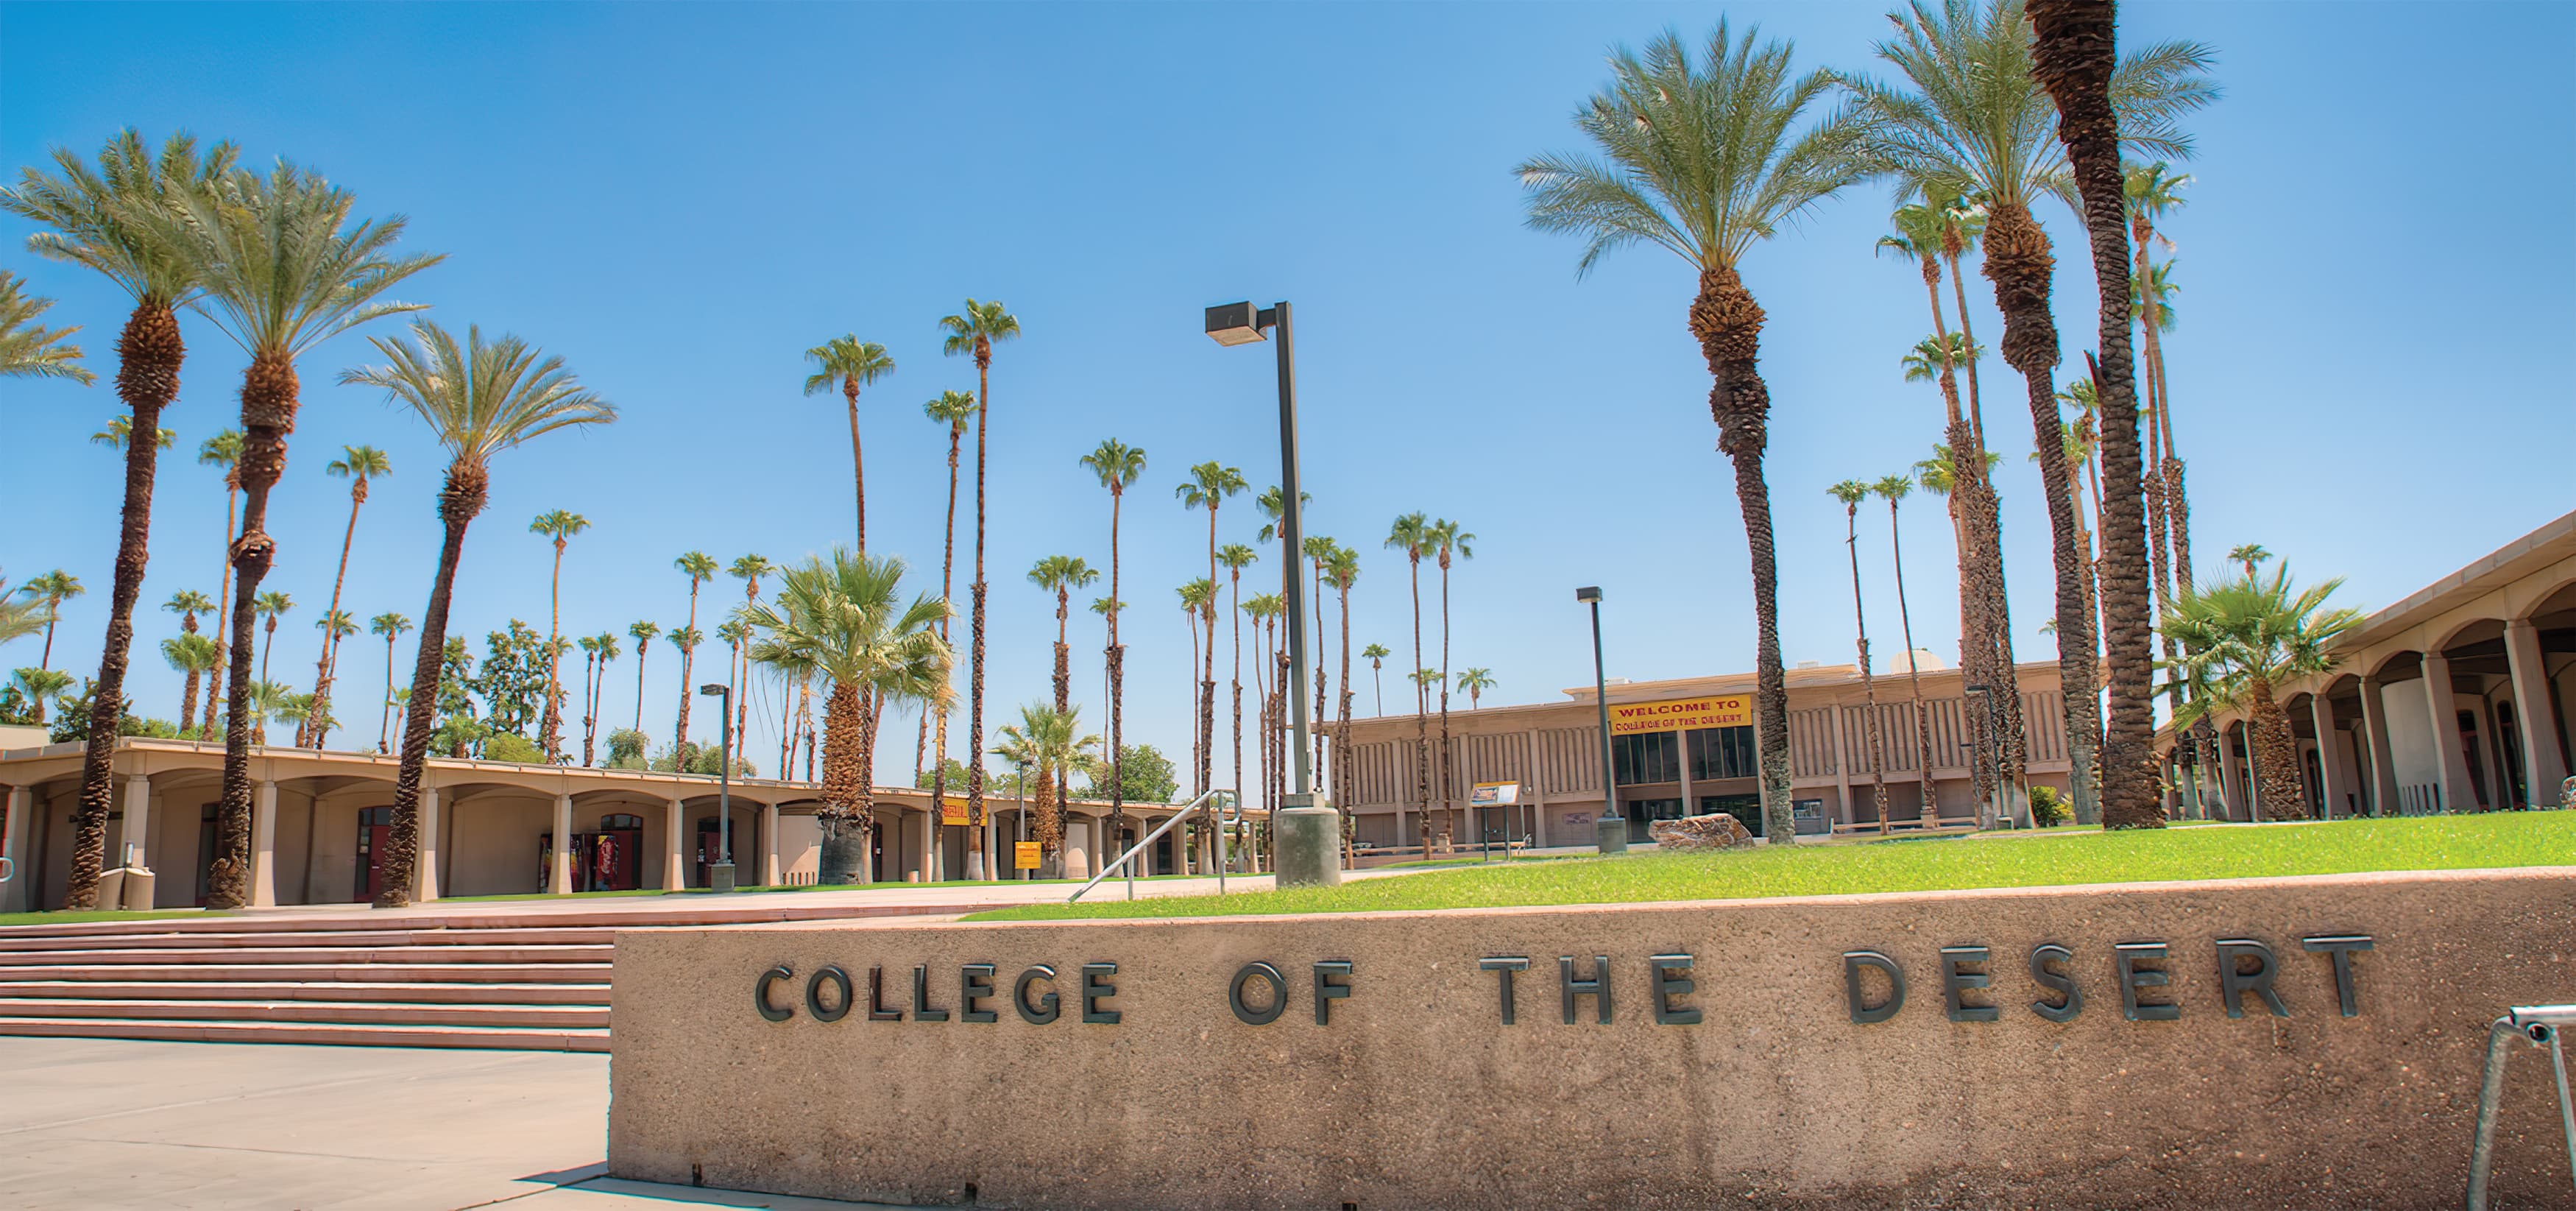 College of the Desert in Palm Springs, California. RSM Design created the campus wide signage guidelines, which includes both vehicular and pedestrian wayfinding and building identities.